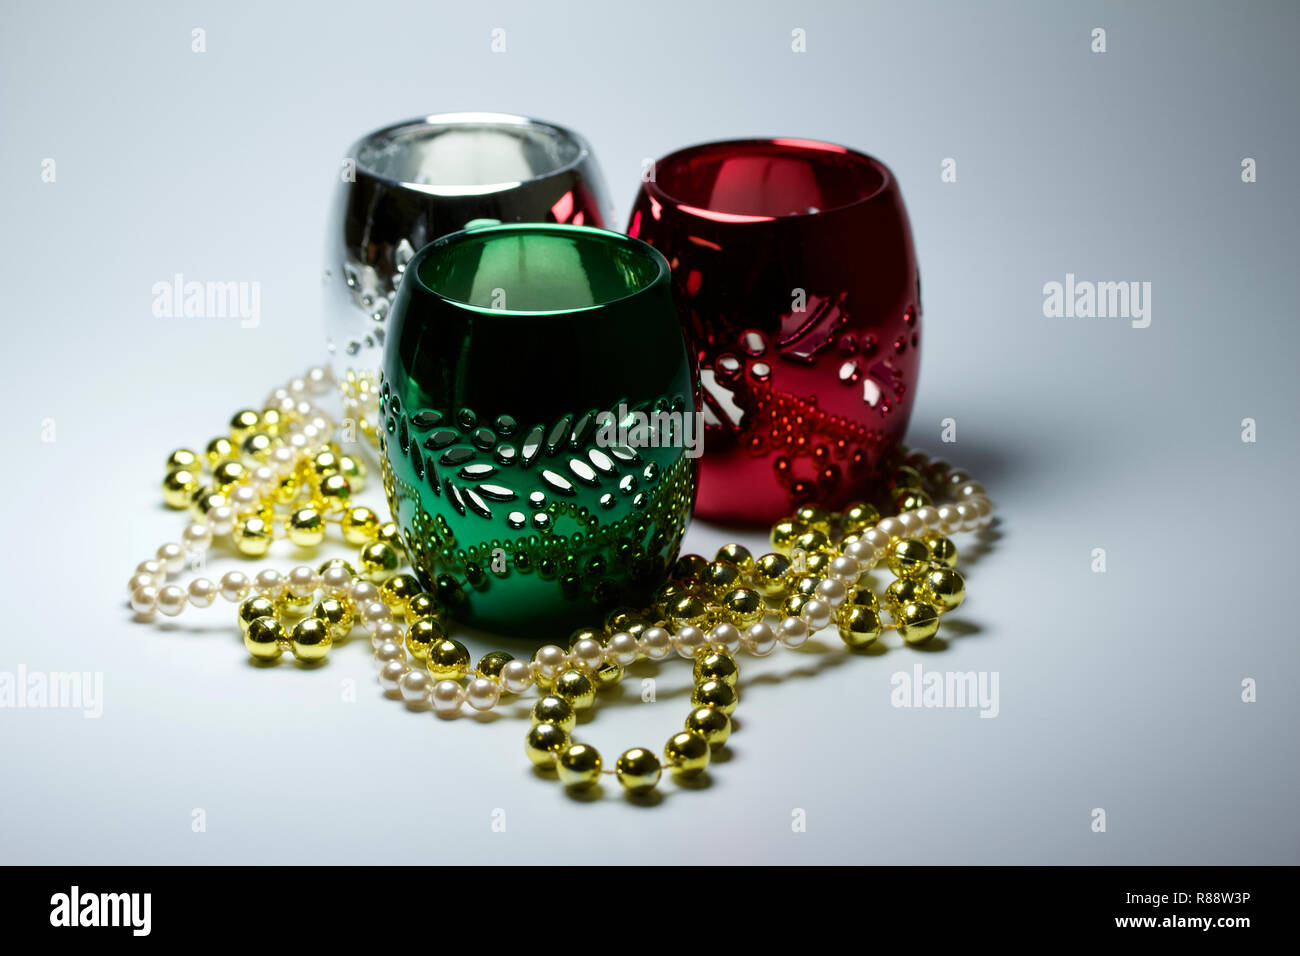 Abstract holiday decoration background with a trio of colorful modern metallic candle holders surrounded by reflecting metal beads - Stock Image